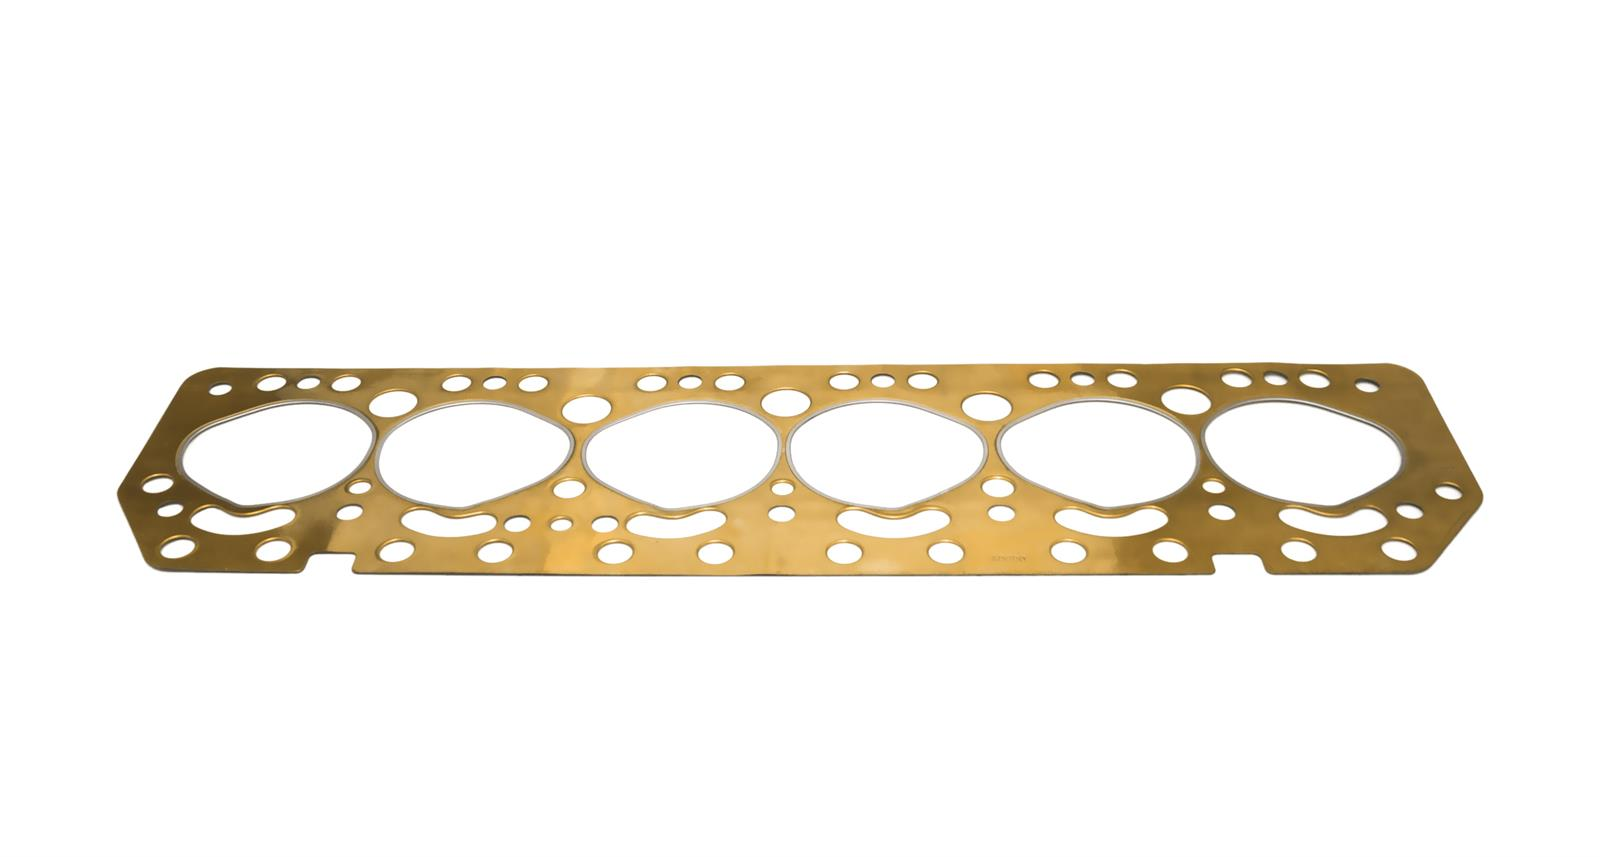 Gasket - Cylinder Head High Quality - UK Made